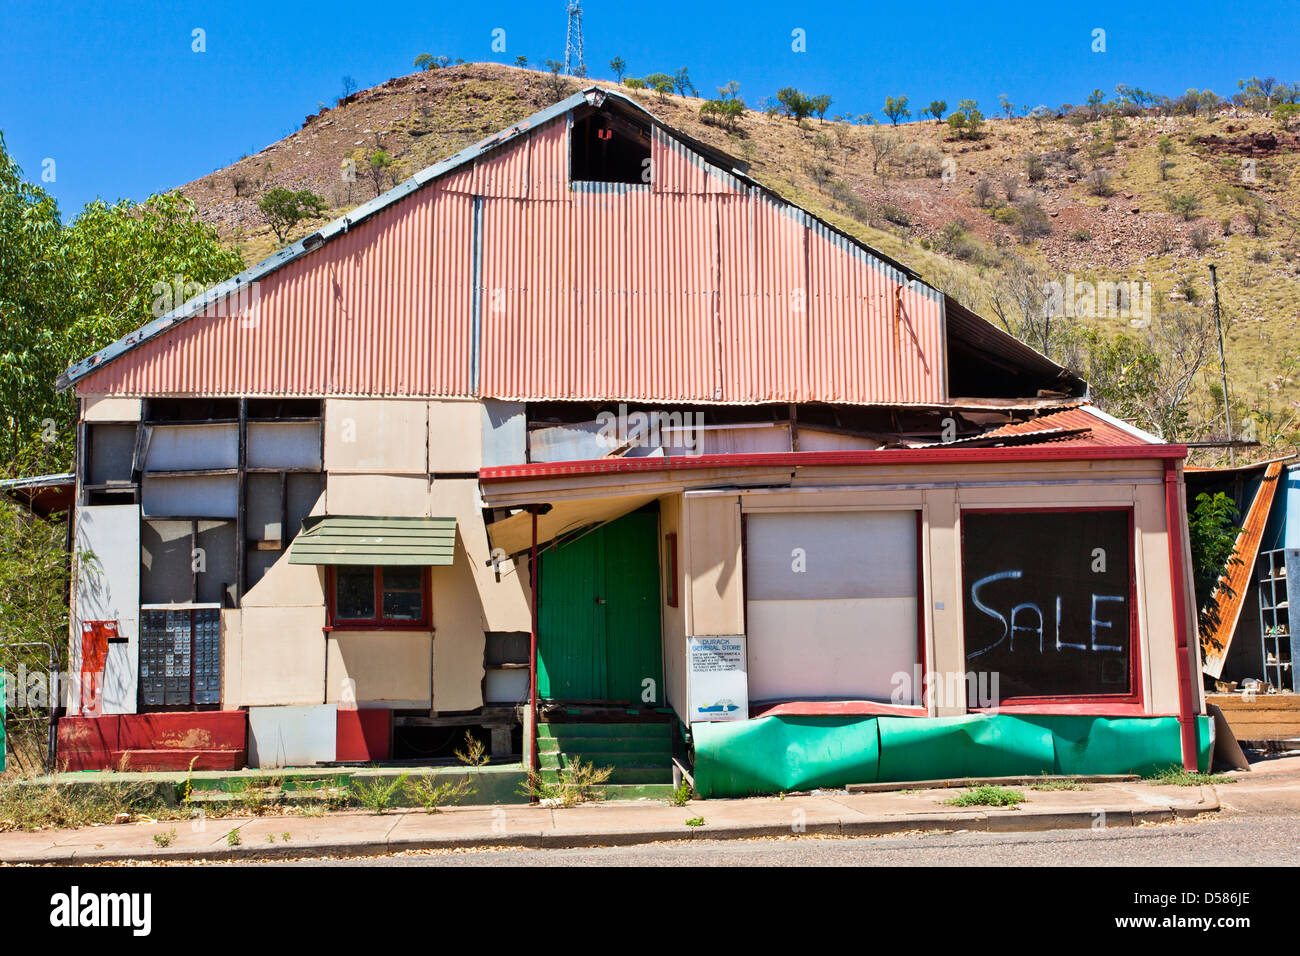 Australia, Western Australia, Wyndham, ghosttown atmosphere at Wyndham Port - Stock Image